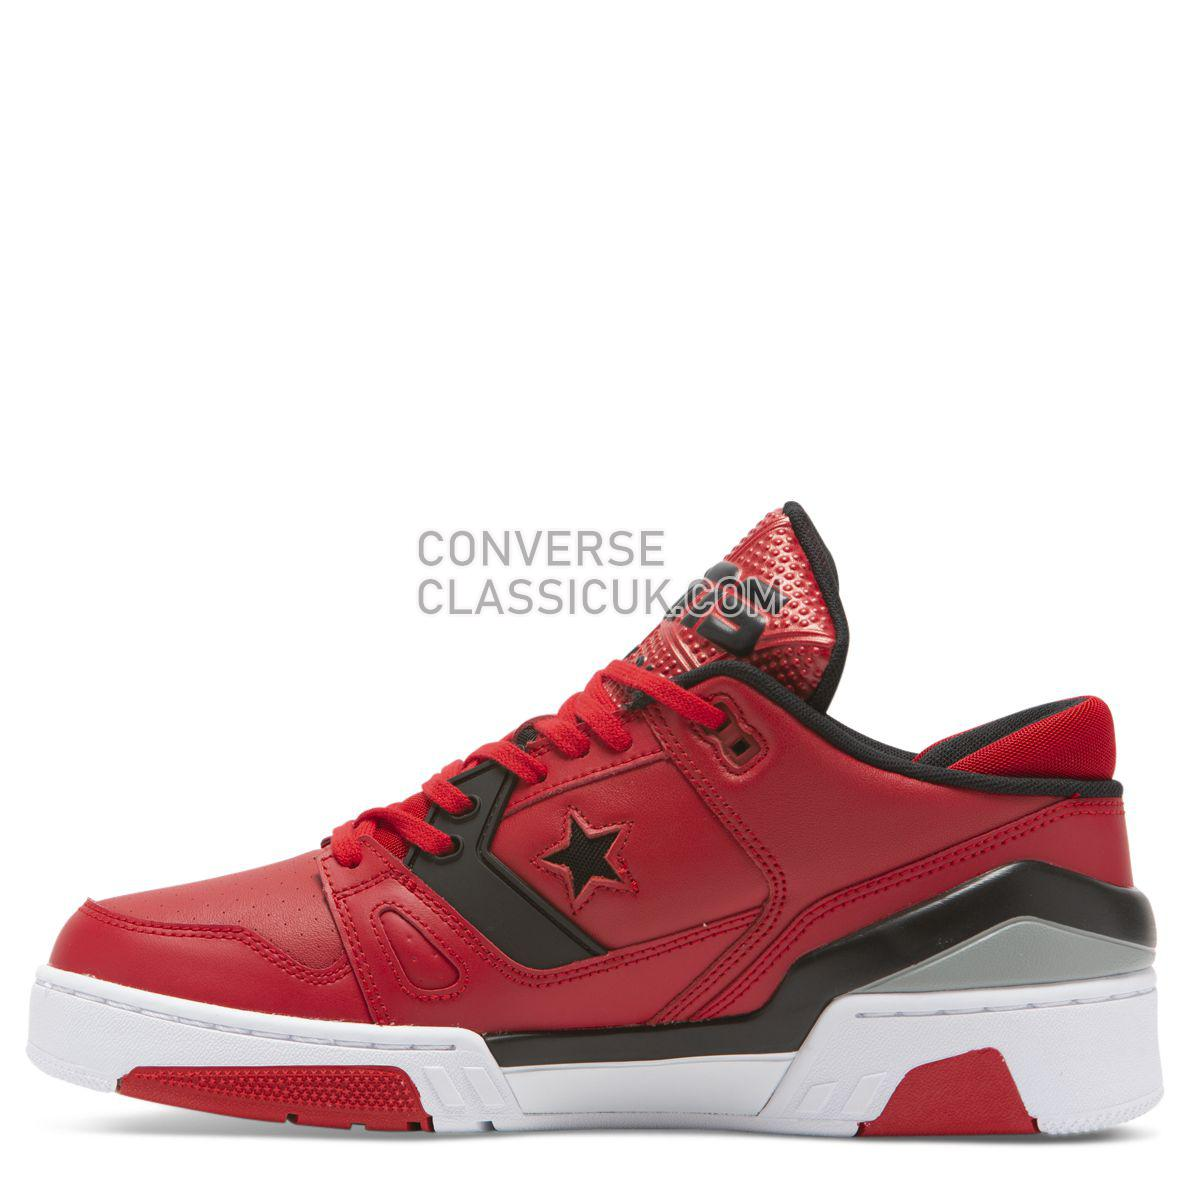 Converse ERX 260 Archive Alive Low Top Enamel Red Mens 165043 Enamel Red/Black/White Shoes